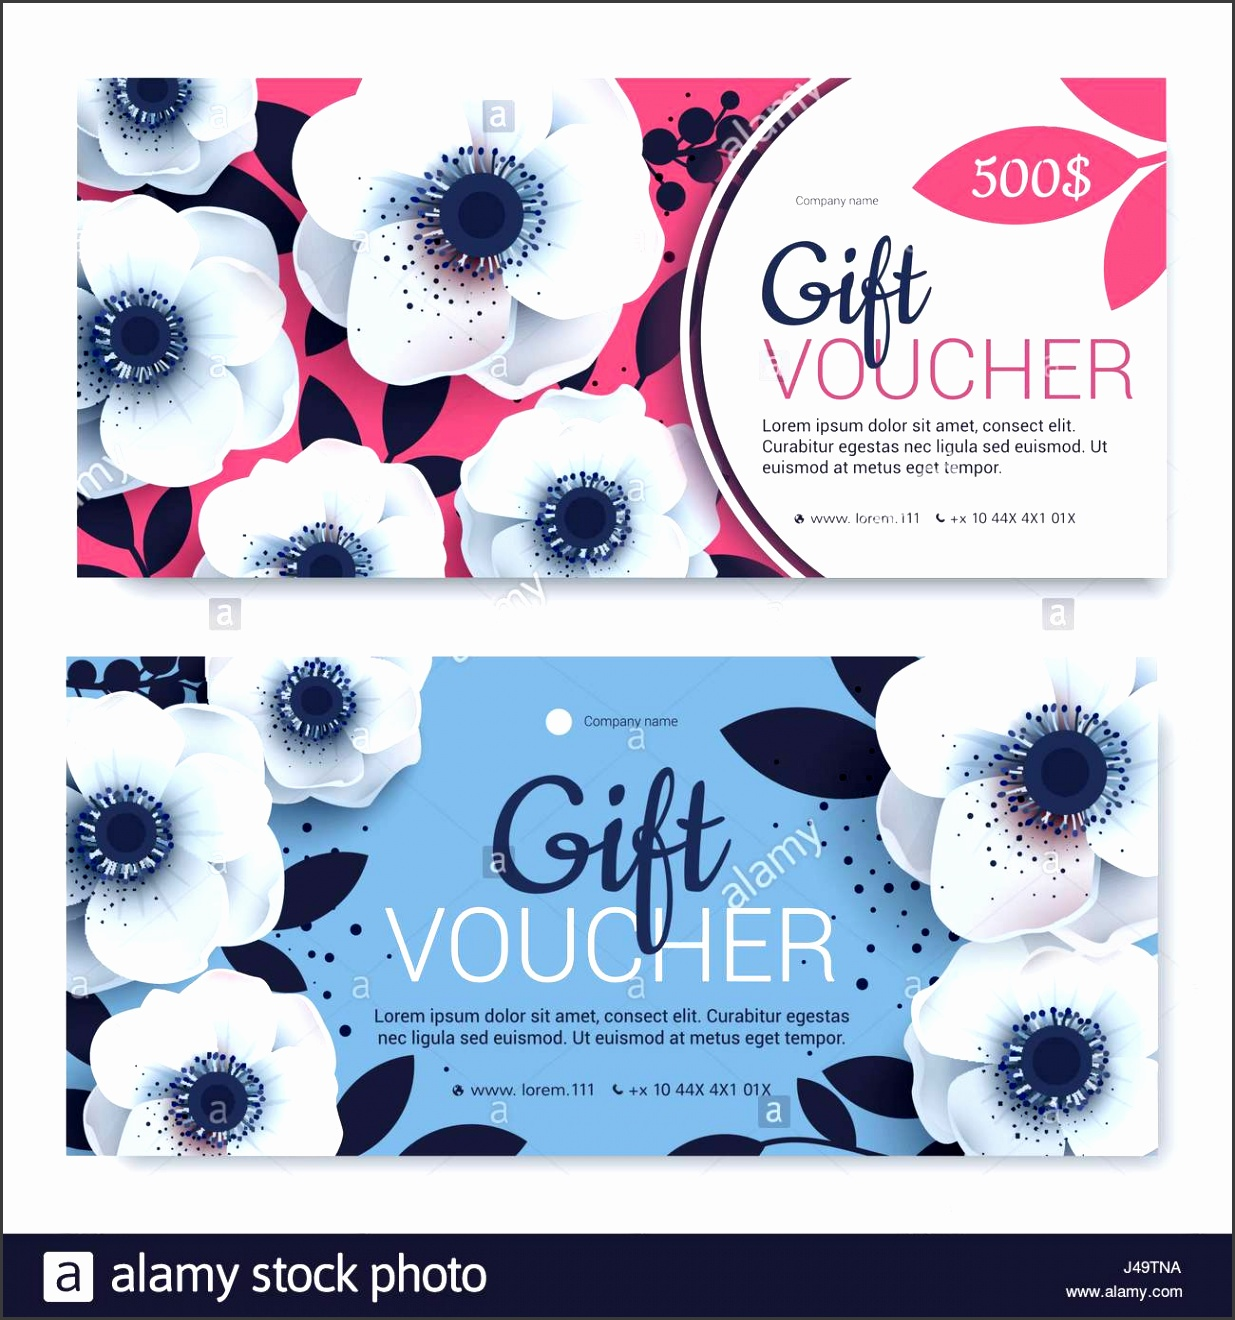 Gift voucher coupon template Bright colors Template for design certificate Background for invitations shop beauty salon spa Blue with pink vec